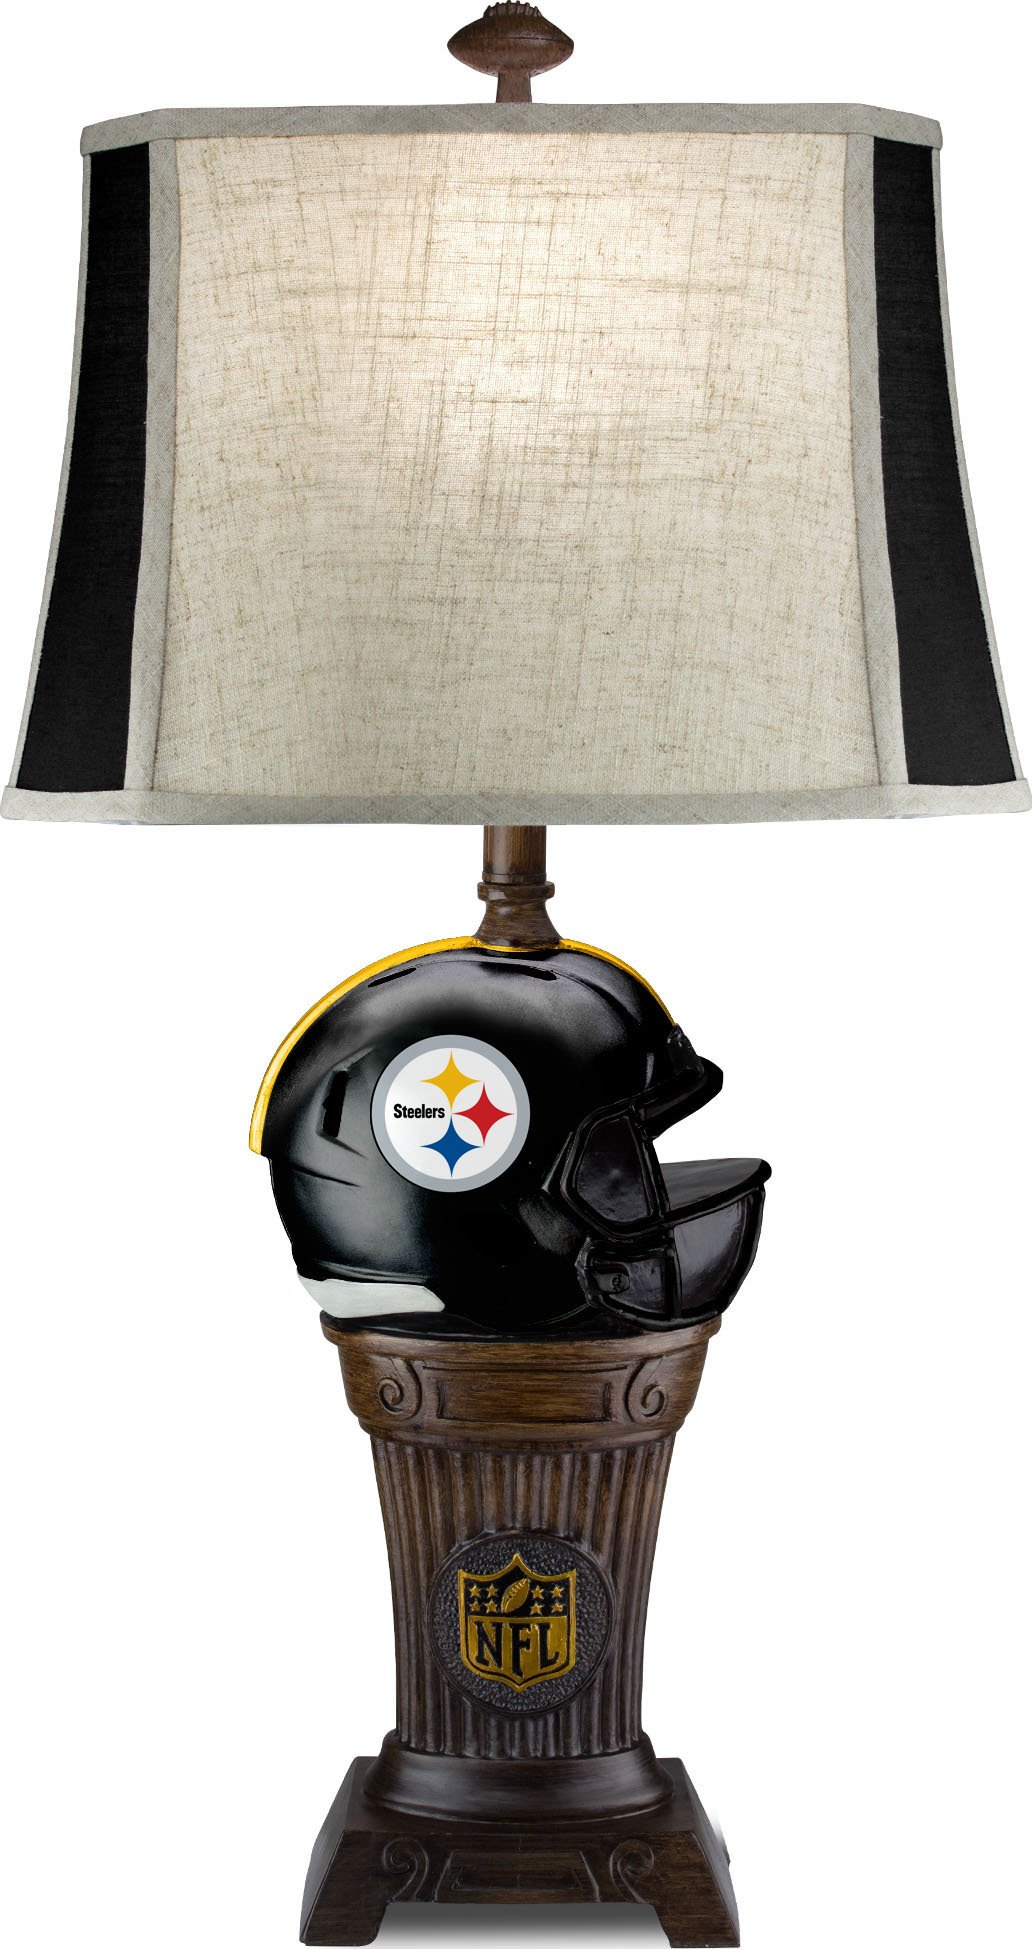 Imperial Officially Licensed NFL Merchandise: Trophy Lamp, Pittsburgh Steelers